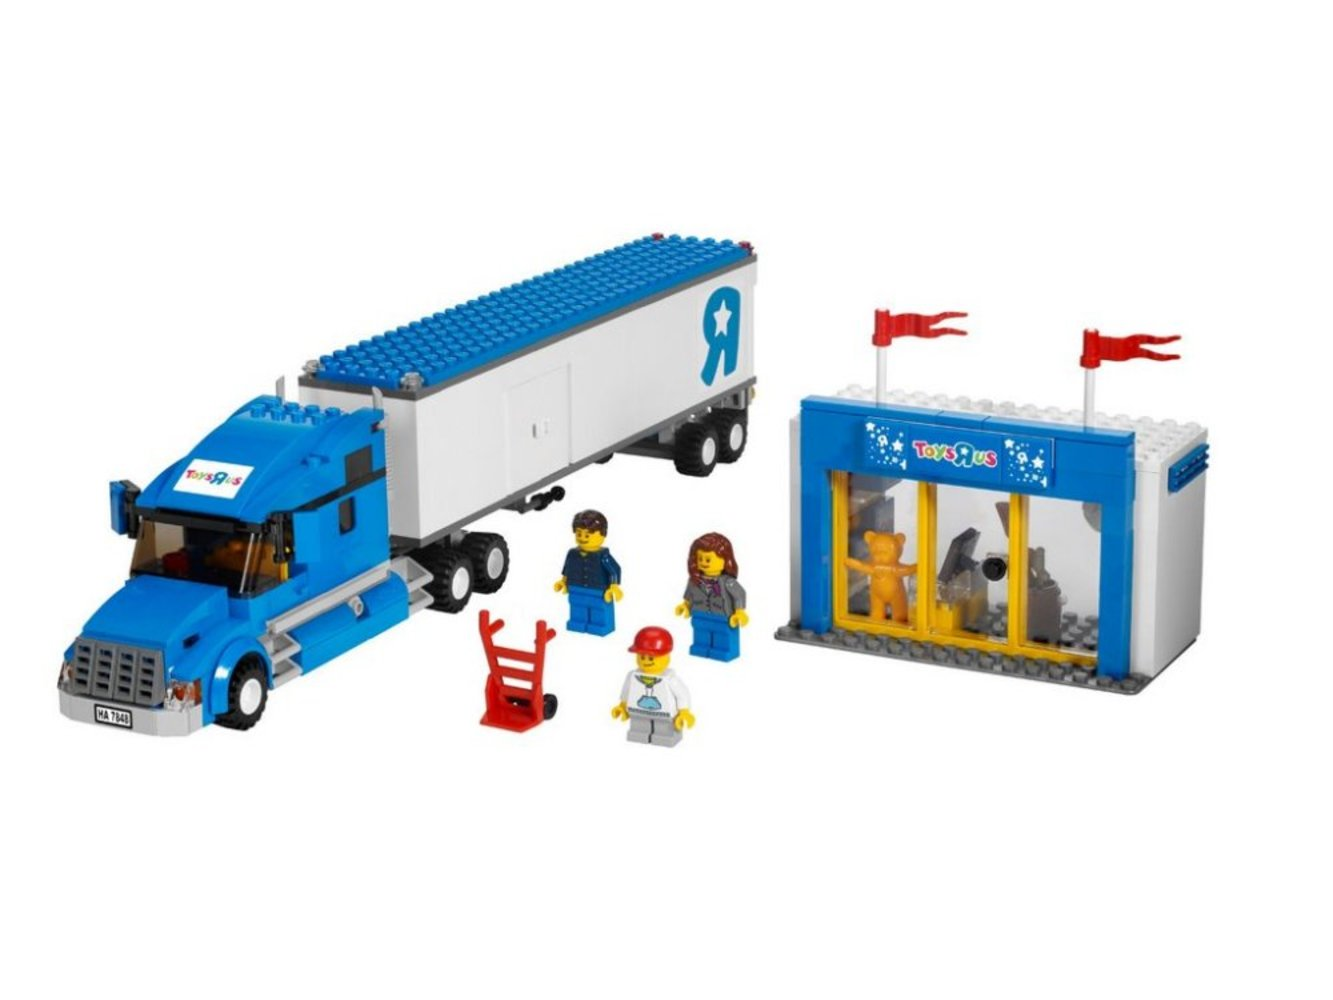 Toys 'R' Us Truck